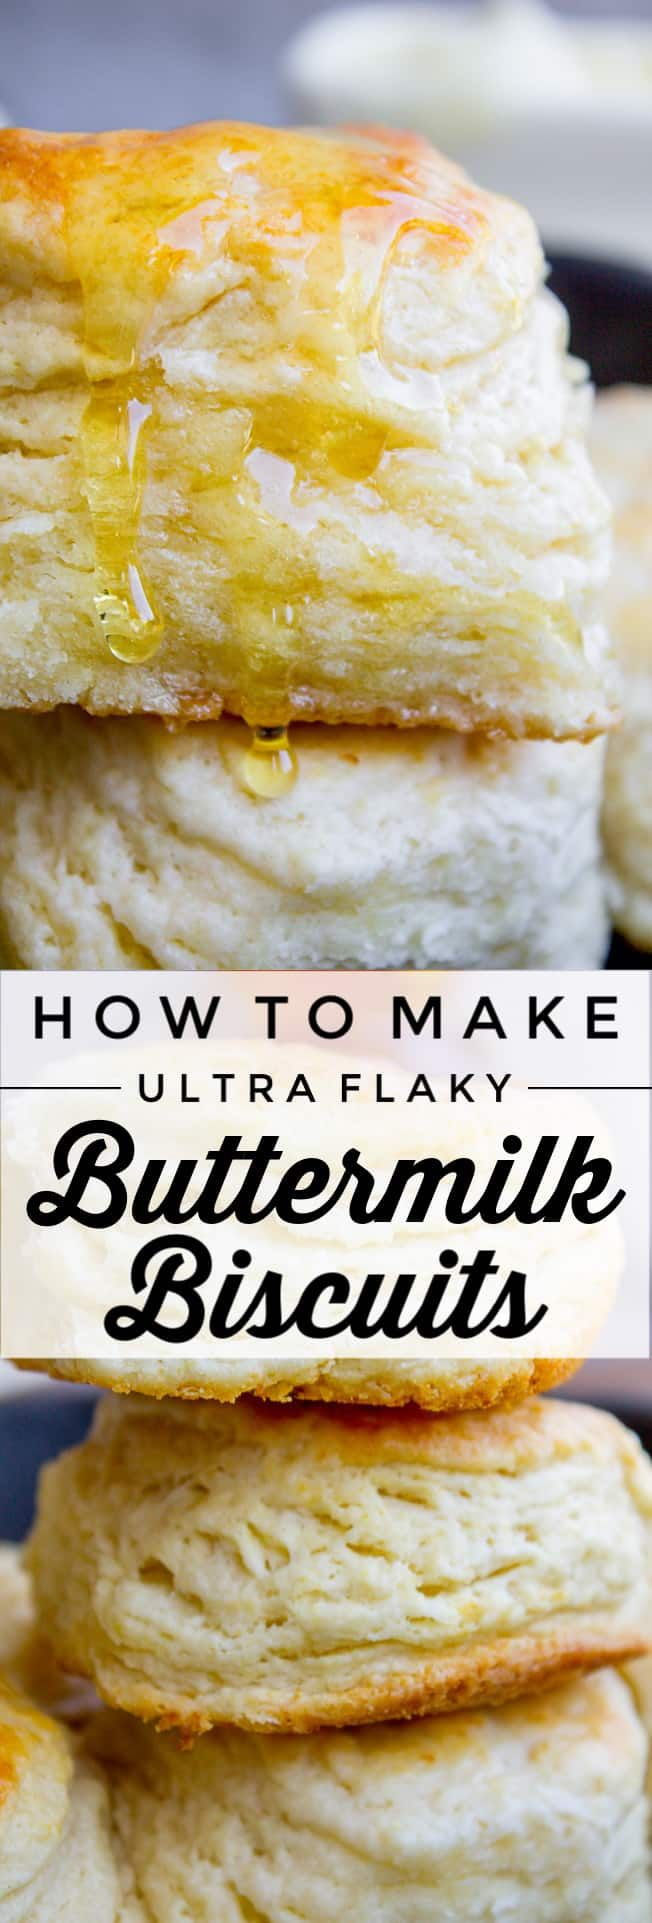 Flaky Buttermilk Biscuits from The Food Charlatan. This ultra flaky homemade buttermilk biscuit is the perfect comfort food! Who can resist a crispy-on-the-outside, tender-in-the-middle, mile-high flaky buttermilk biscuit? Here's how to make them. It's not hard, just a few simple tricks! Keep reading! #biscuits #buttermilk #homemade #flaky #butter #easy #fromscratch